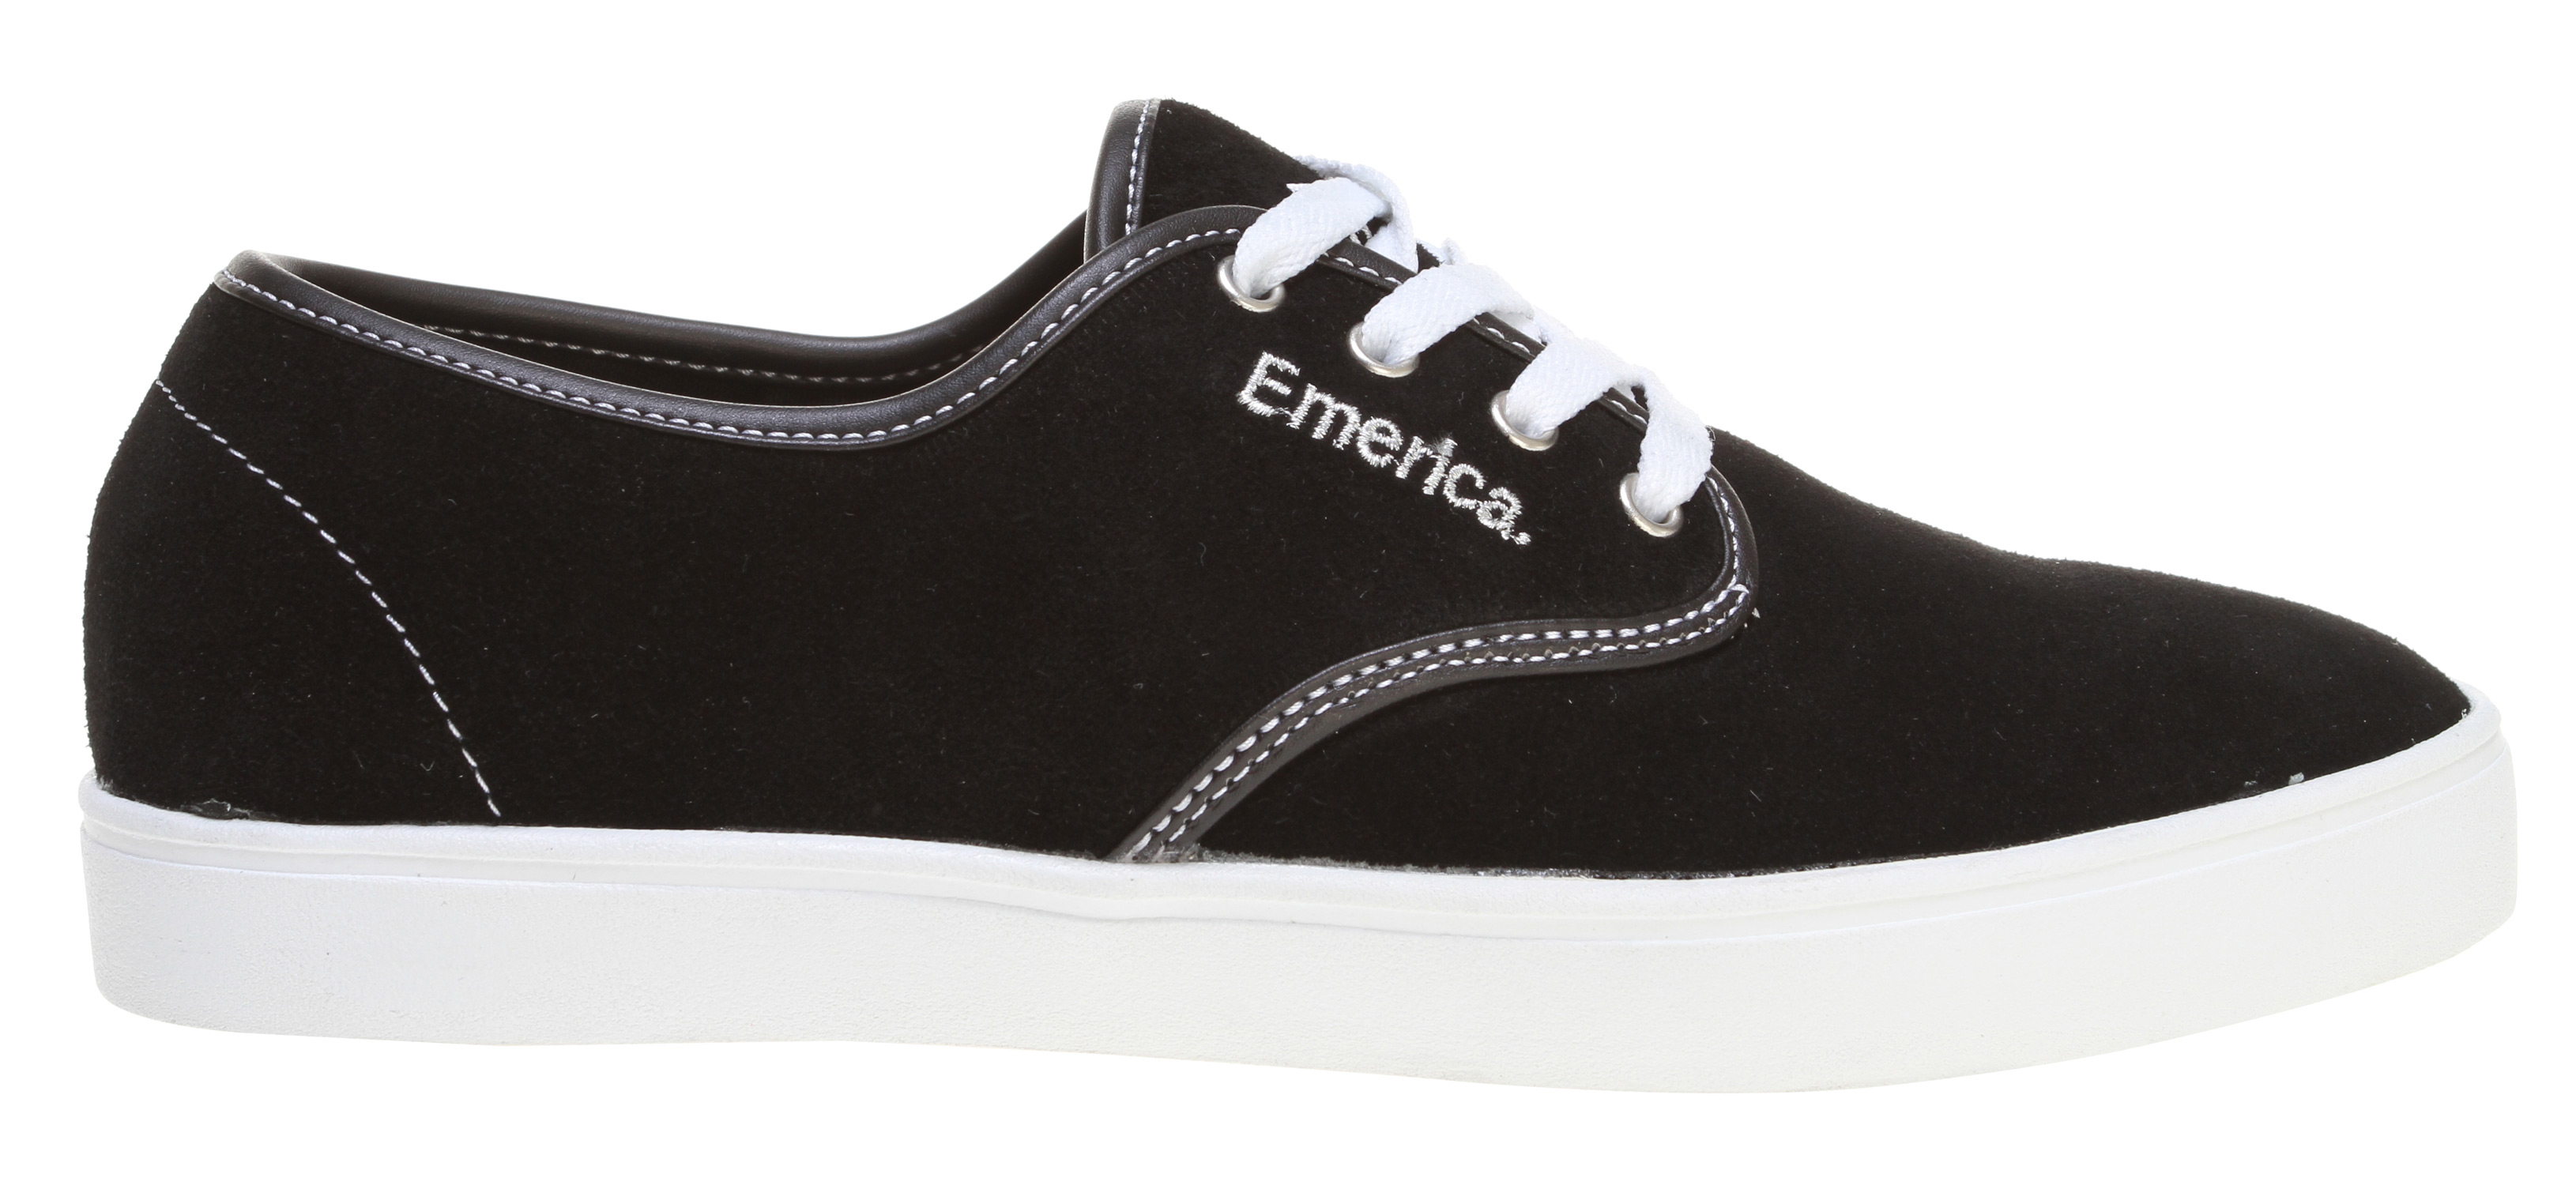 Skateboard Emerica team rider-inspired and desired, the Laced is a nice-priced, super-thin skate chiller that is, despite its name, meant to be worn without laces. just like Andrew runs 'em. Don't worry, a special hidden elastic band will keep these pups snug. But, we'll throw a set of laces in the box in case you want to tie up anyway.Key Features of the Emerica Laced Skate Shoe: Lightweight textile or suede upper materials STI Foam Lite level 1 footbed 400 NBS natural gum rubber cupsole - $49.95